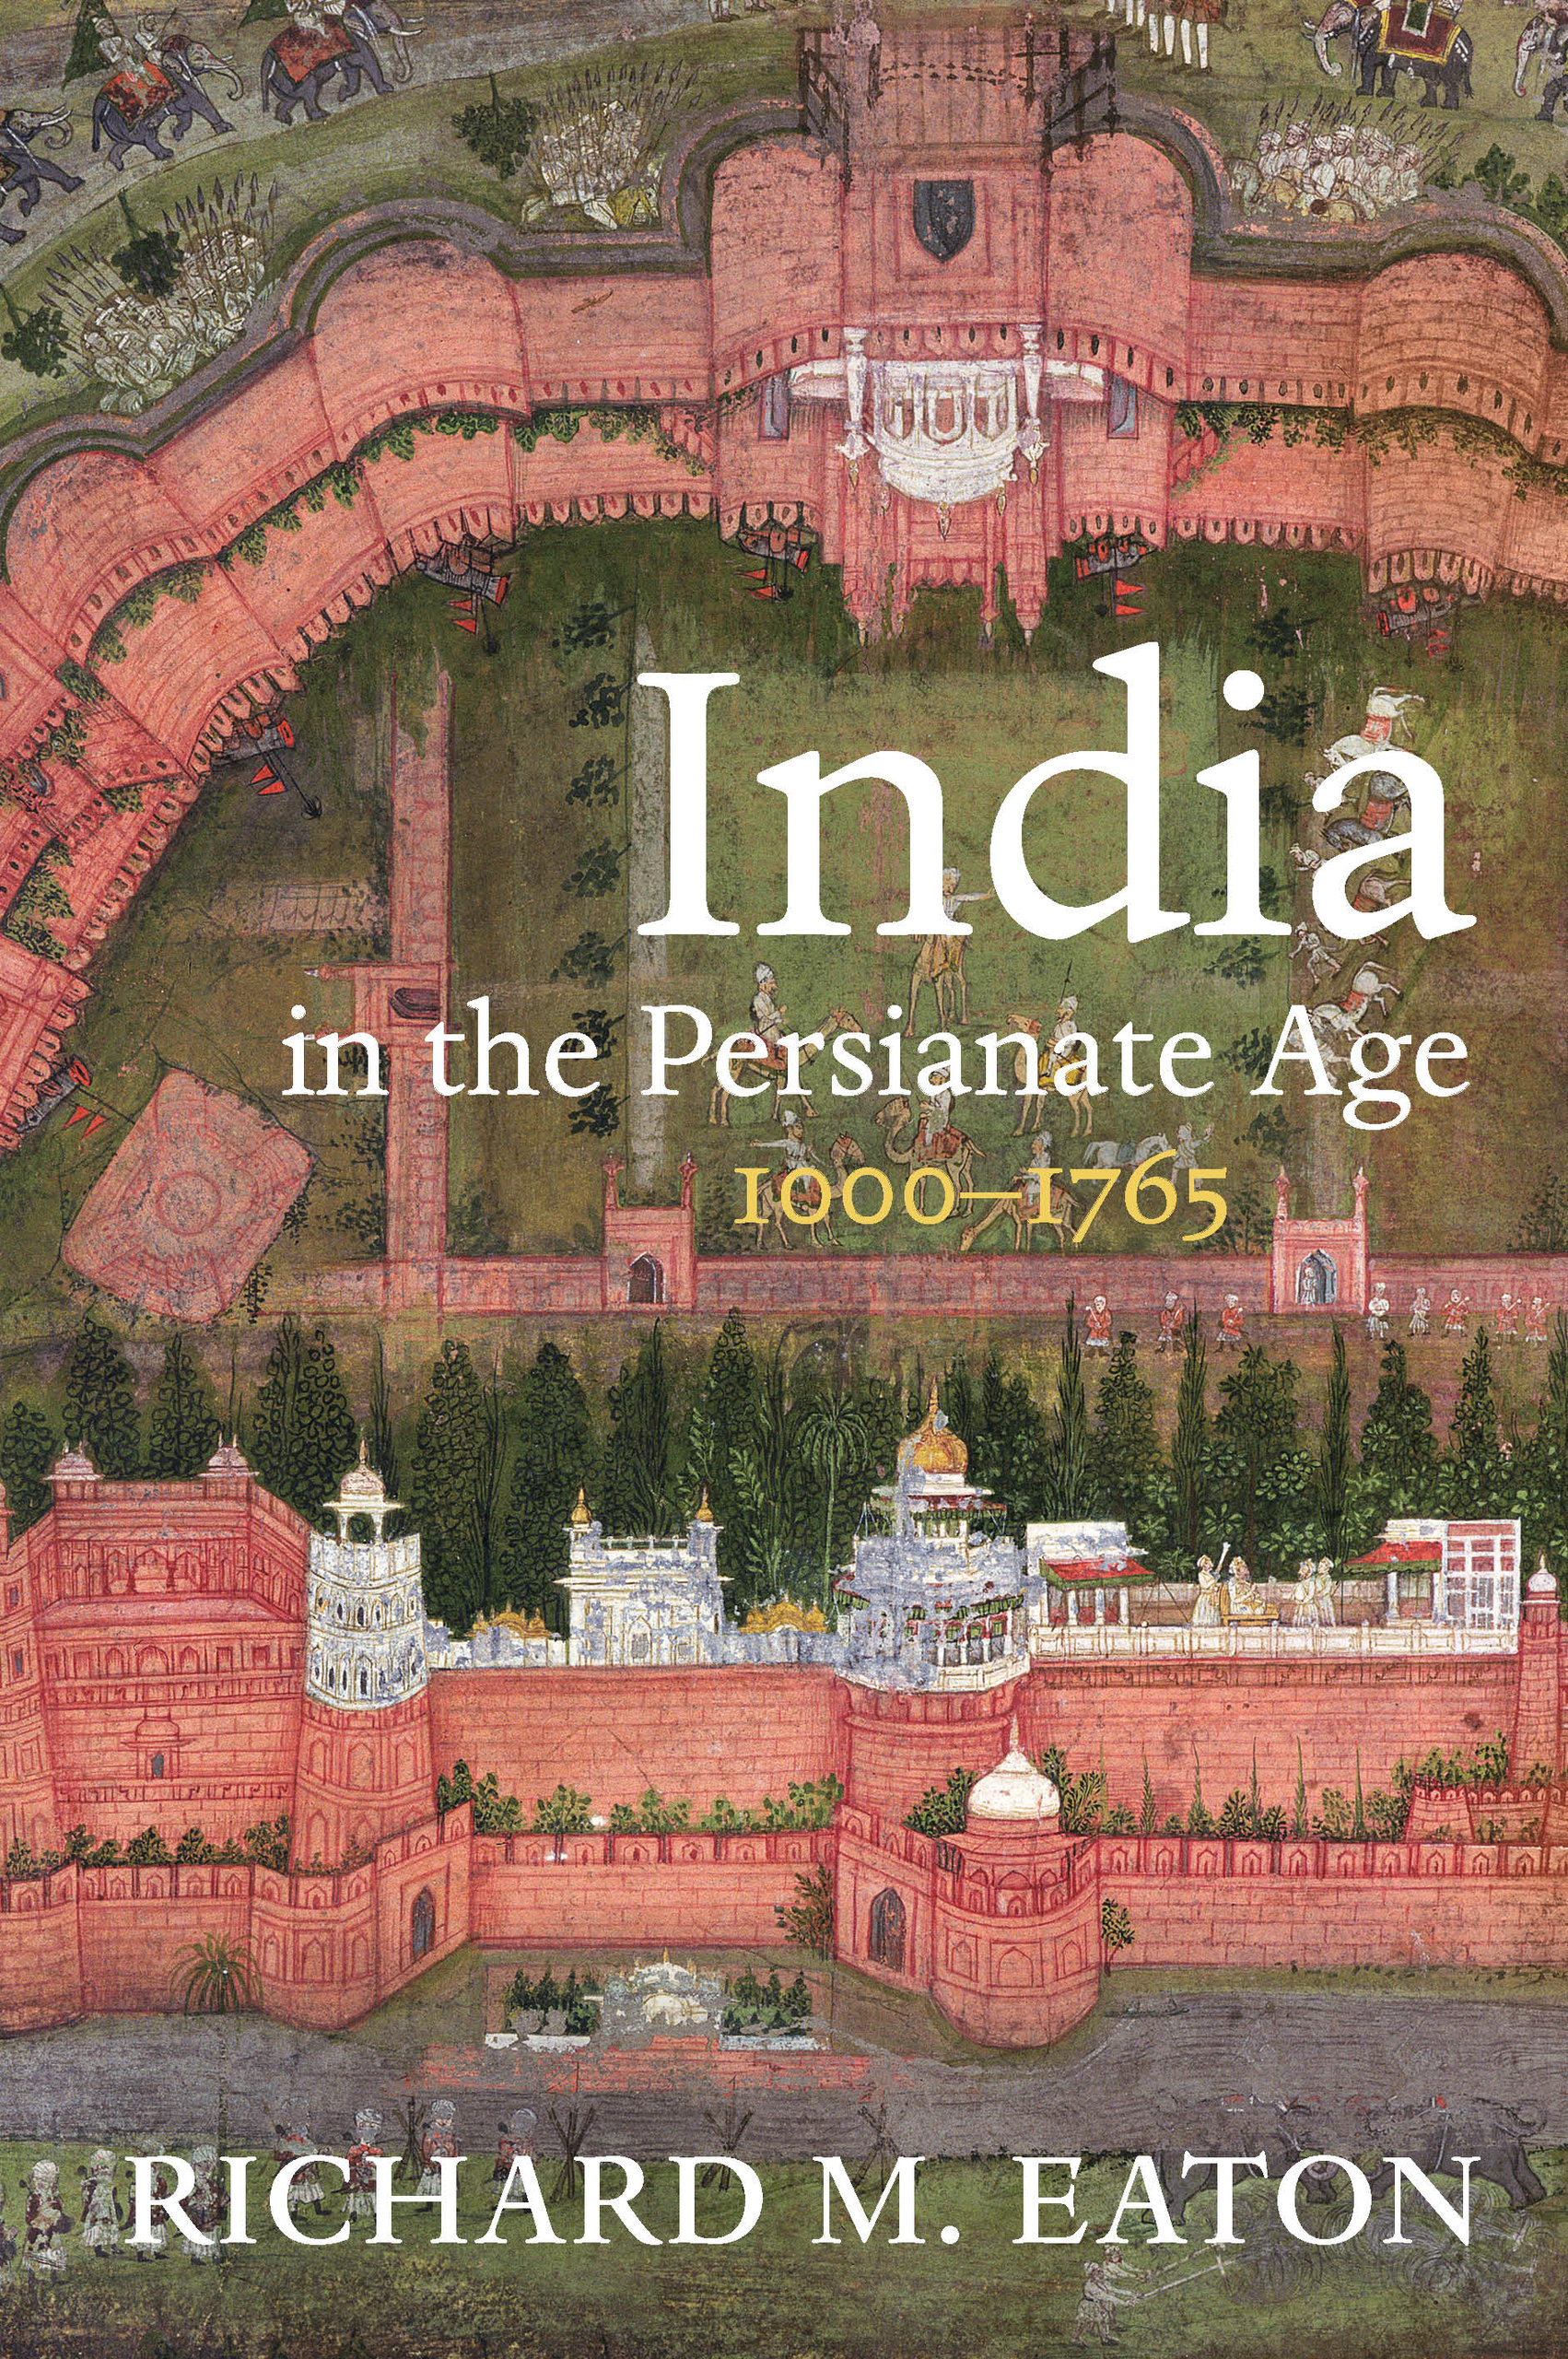 """New book titled """"India in the Persianate Age: 1000-1765"""" by professor and author Richard M Eaton released"""